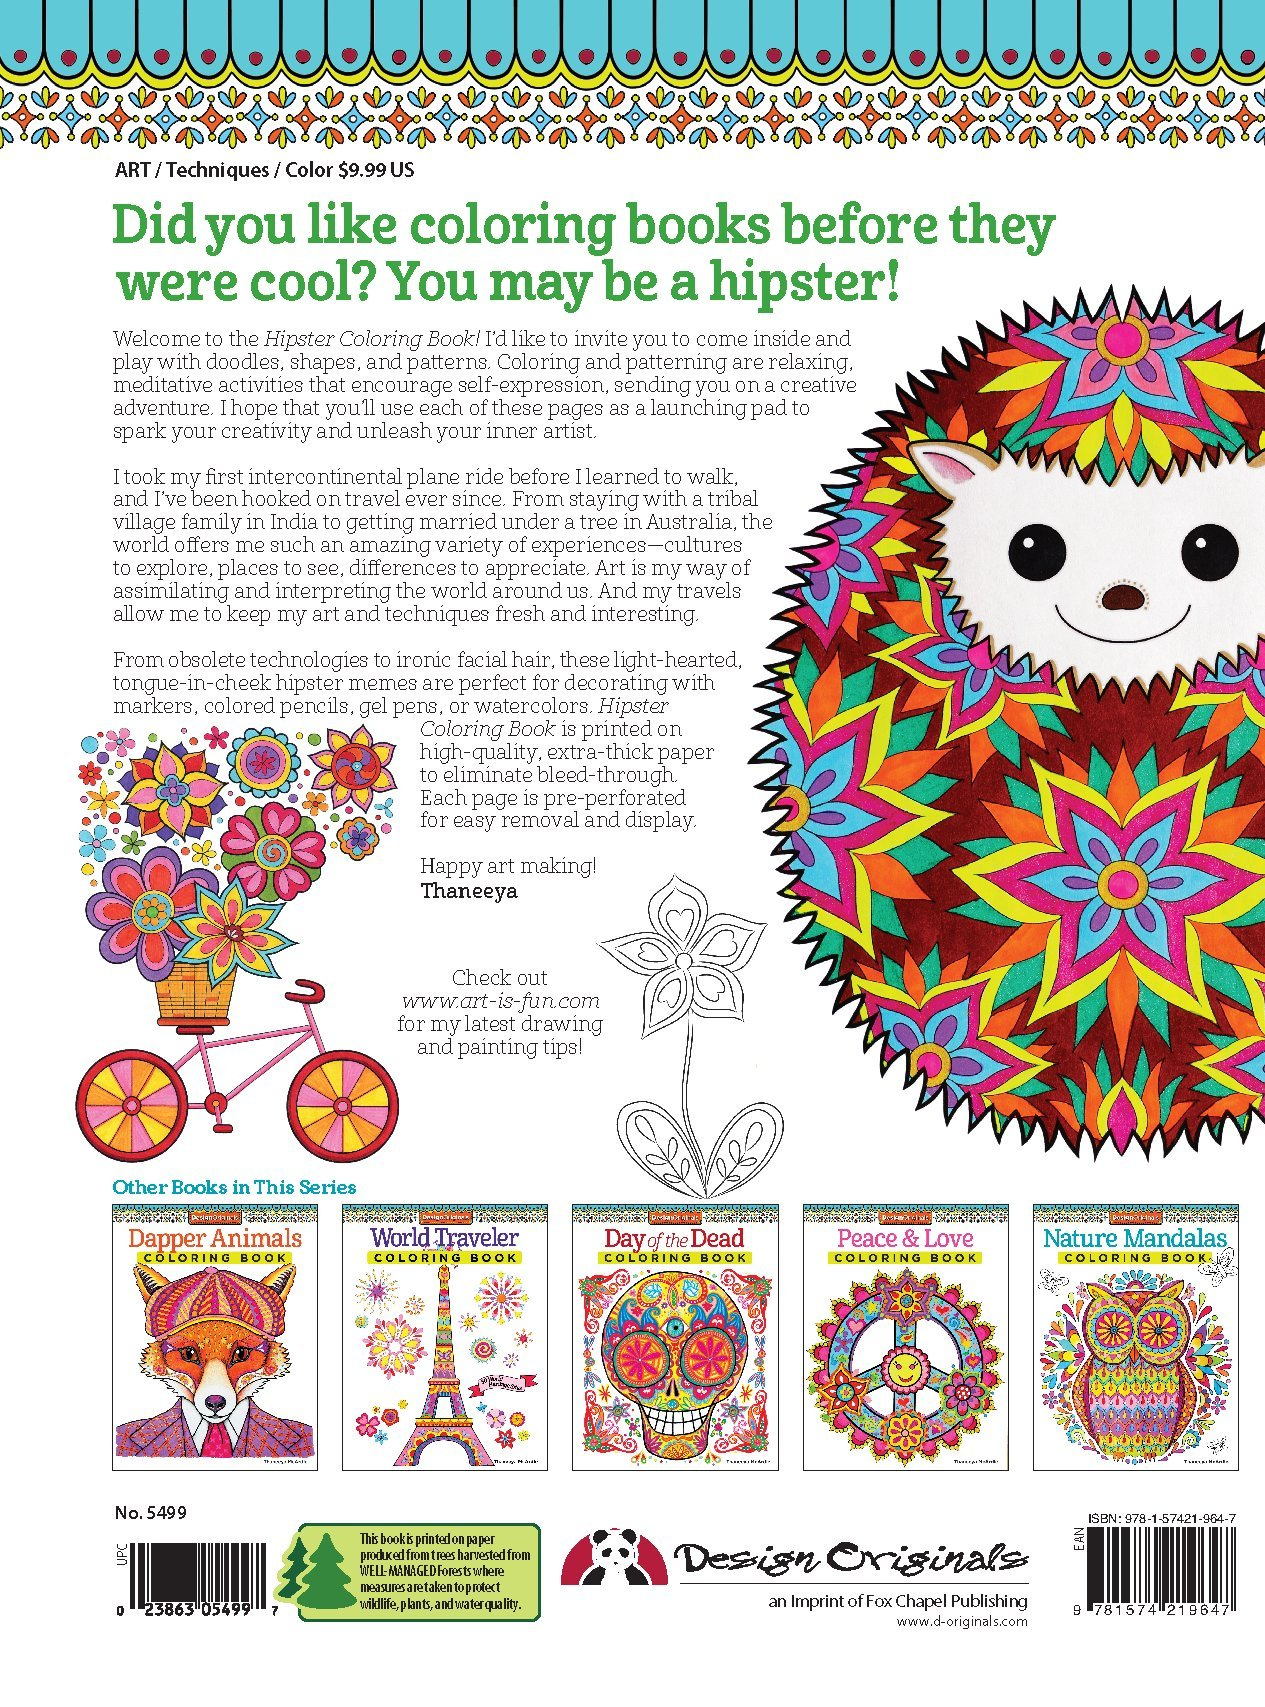 Hipster Coloring Book Design Originals Thaneeya McArdle 8601419687107 Amazon Books